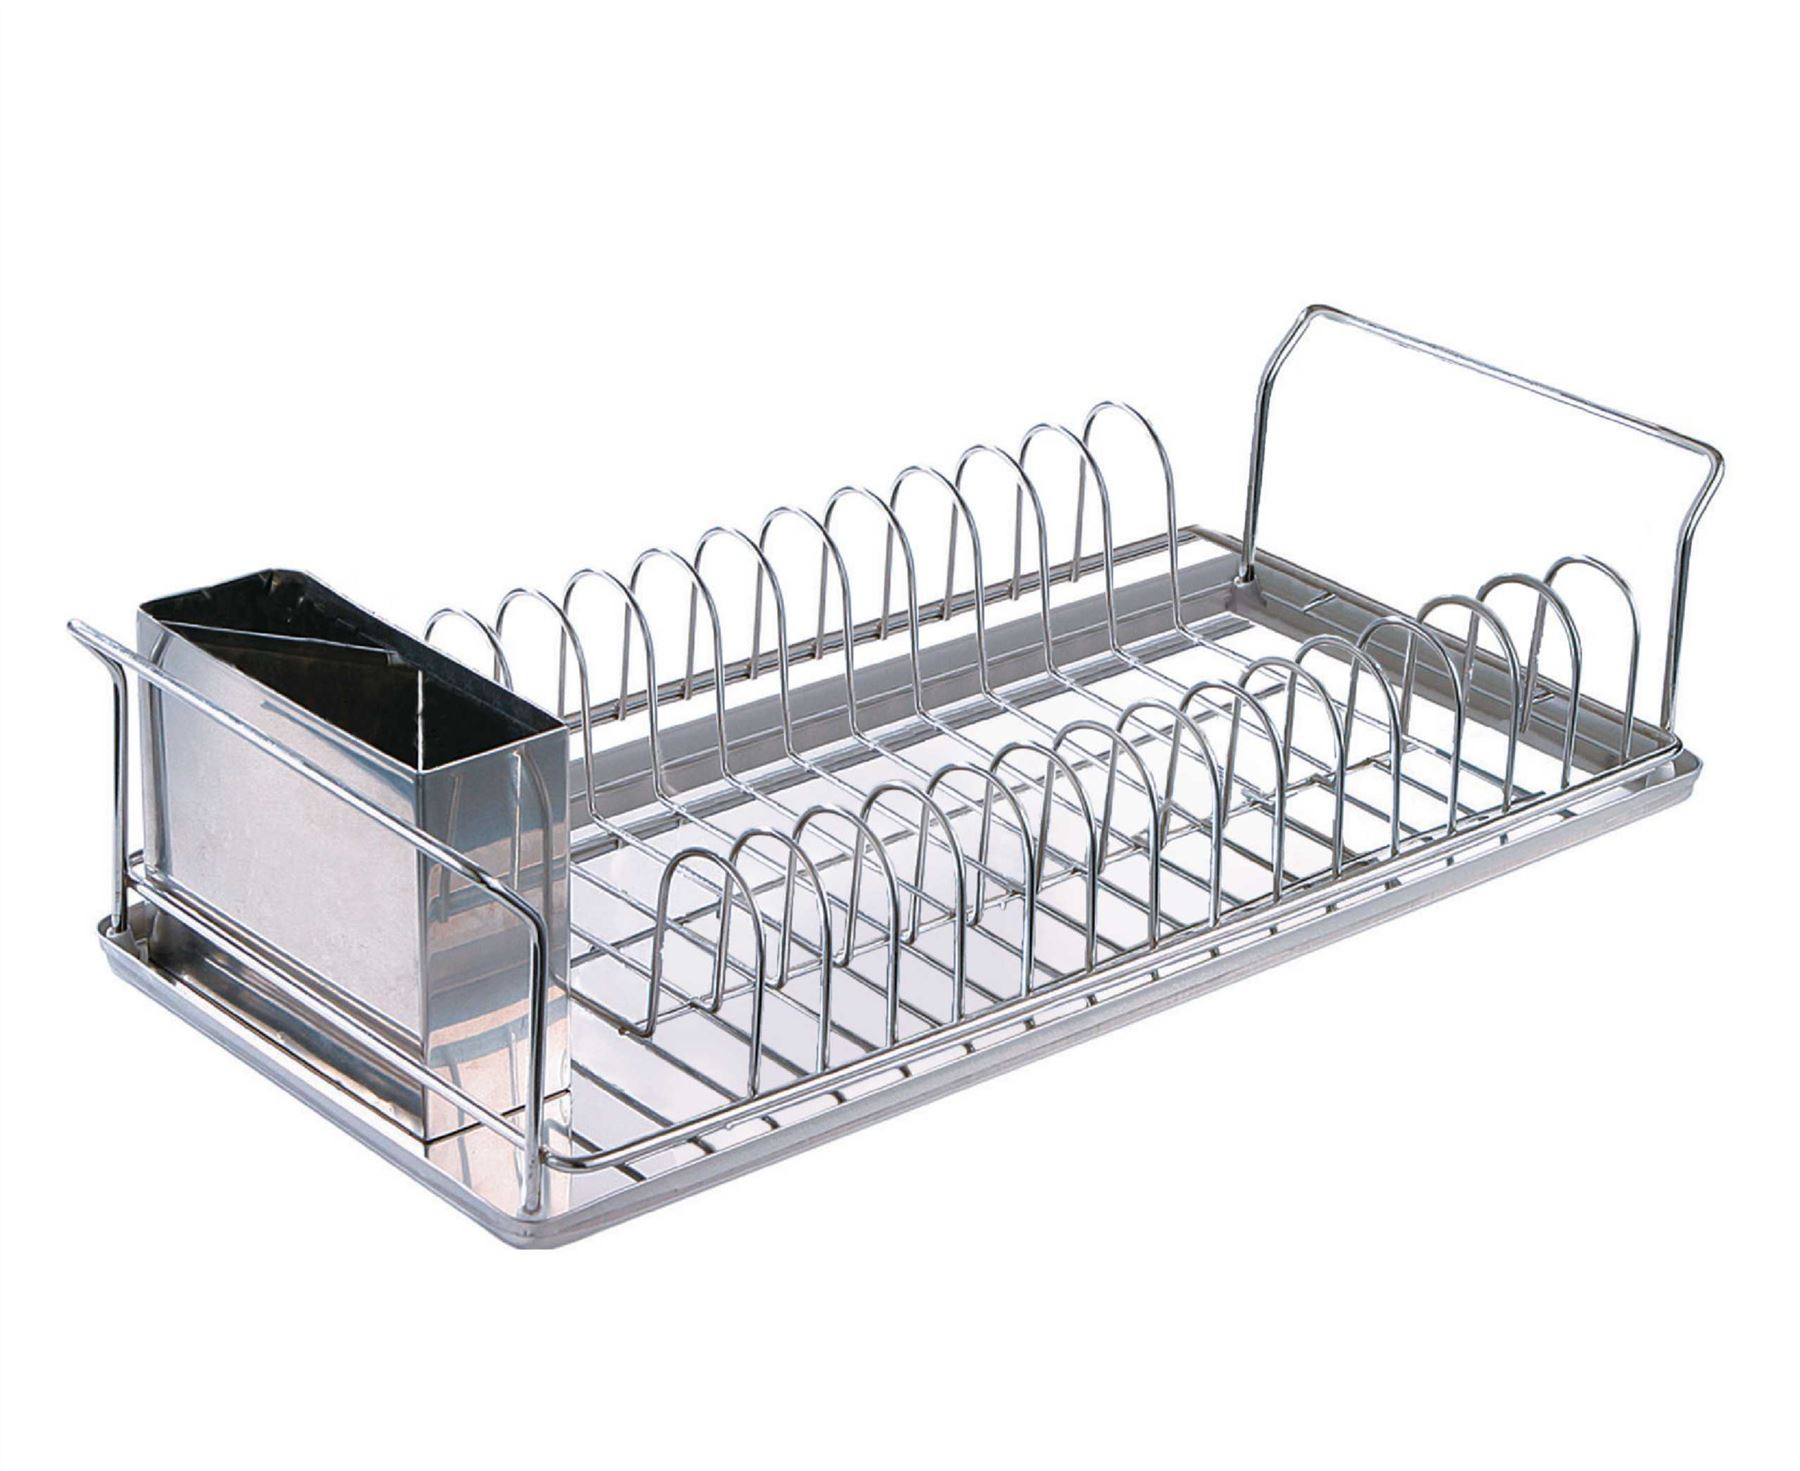 slimline drainer tray dish cutlery rack kitchen stainless steel plate set ebay. Black Bedroom Furniture Sets. Home Design Ideas